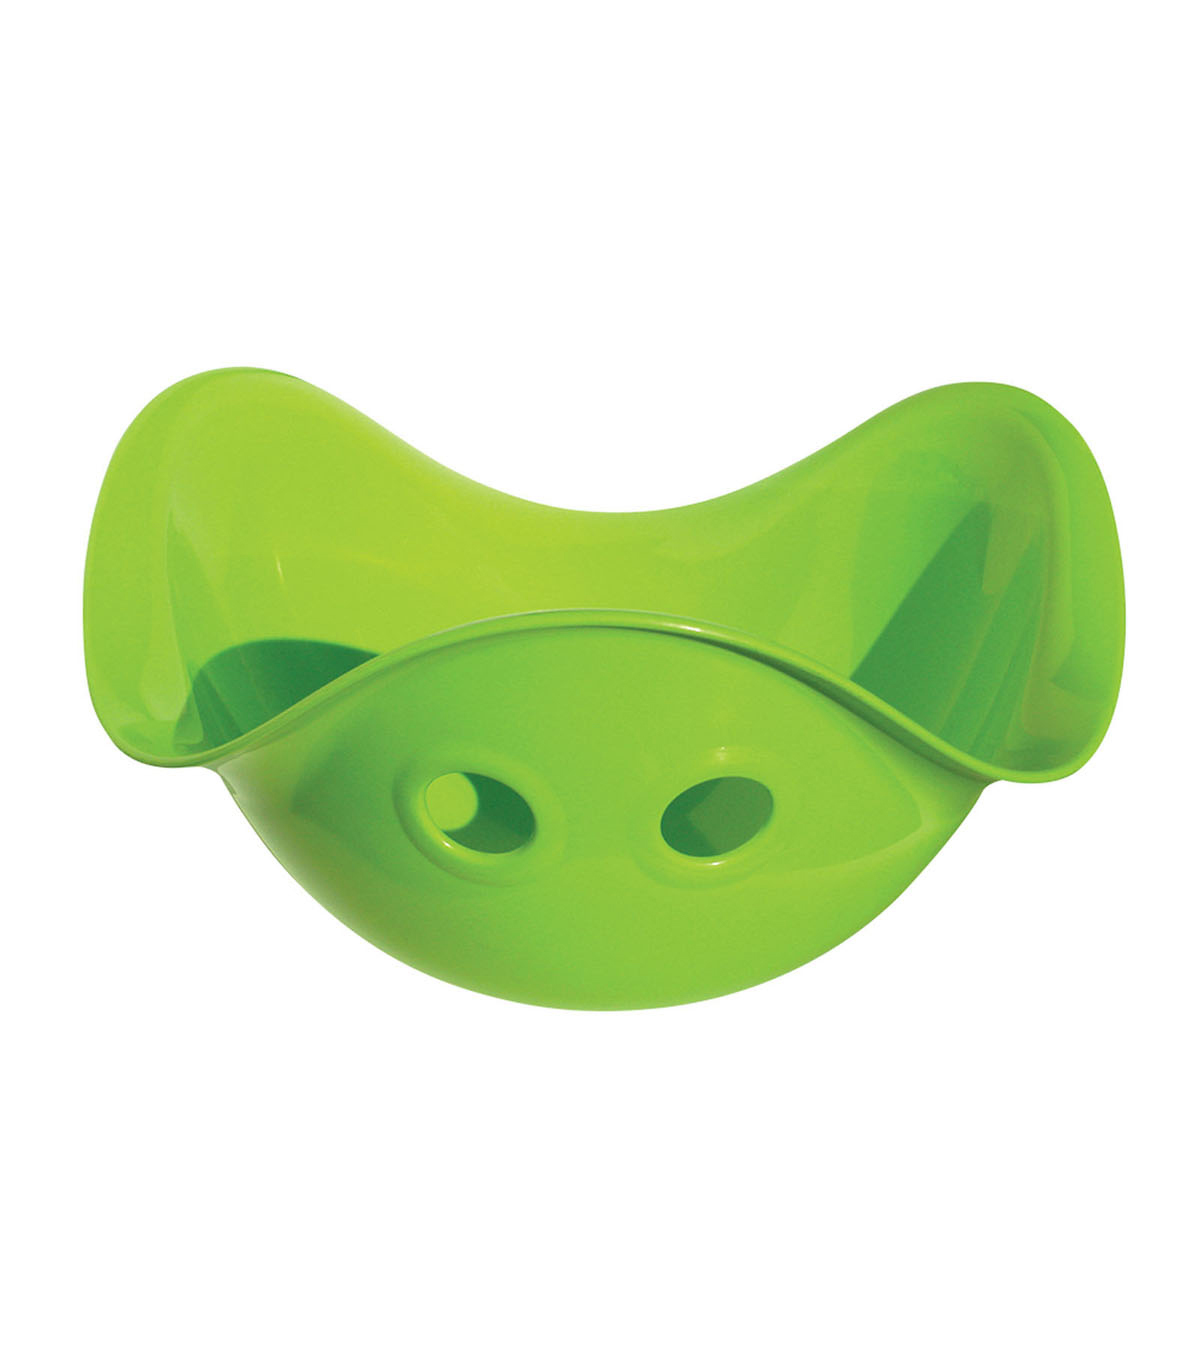 Moluk Bilibo Children\u0027s Seat-Green